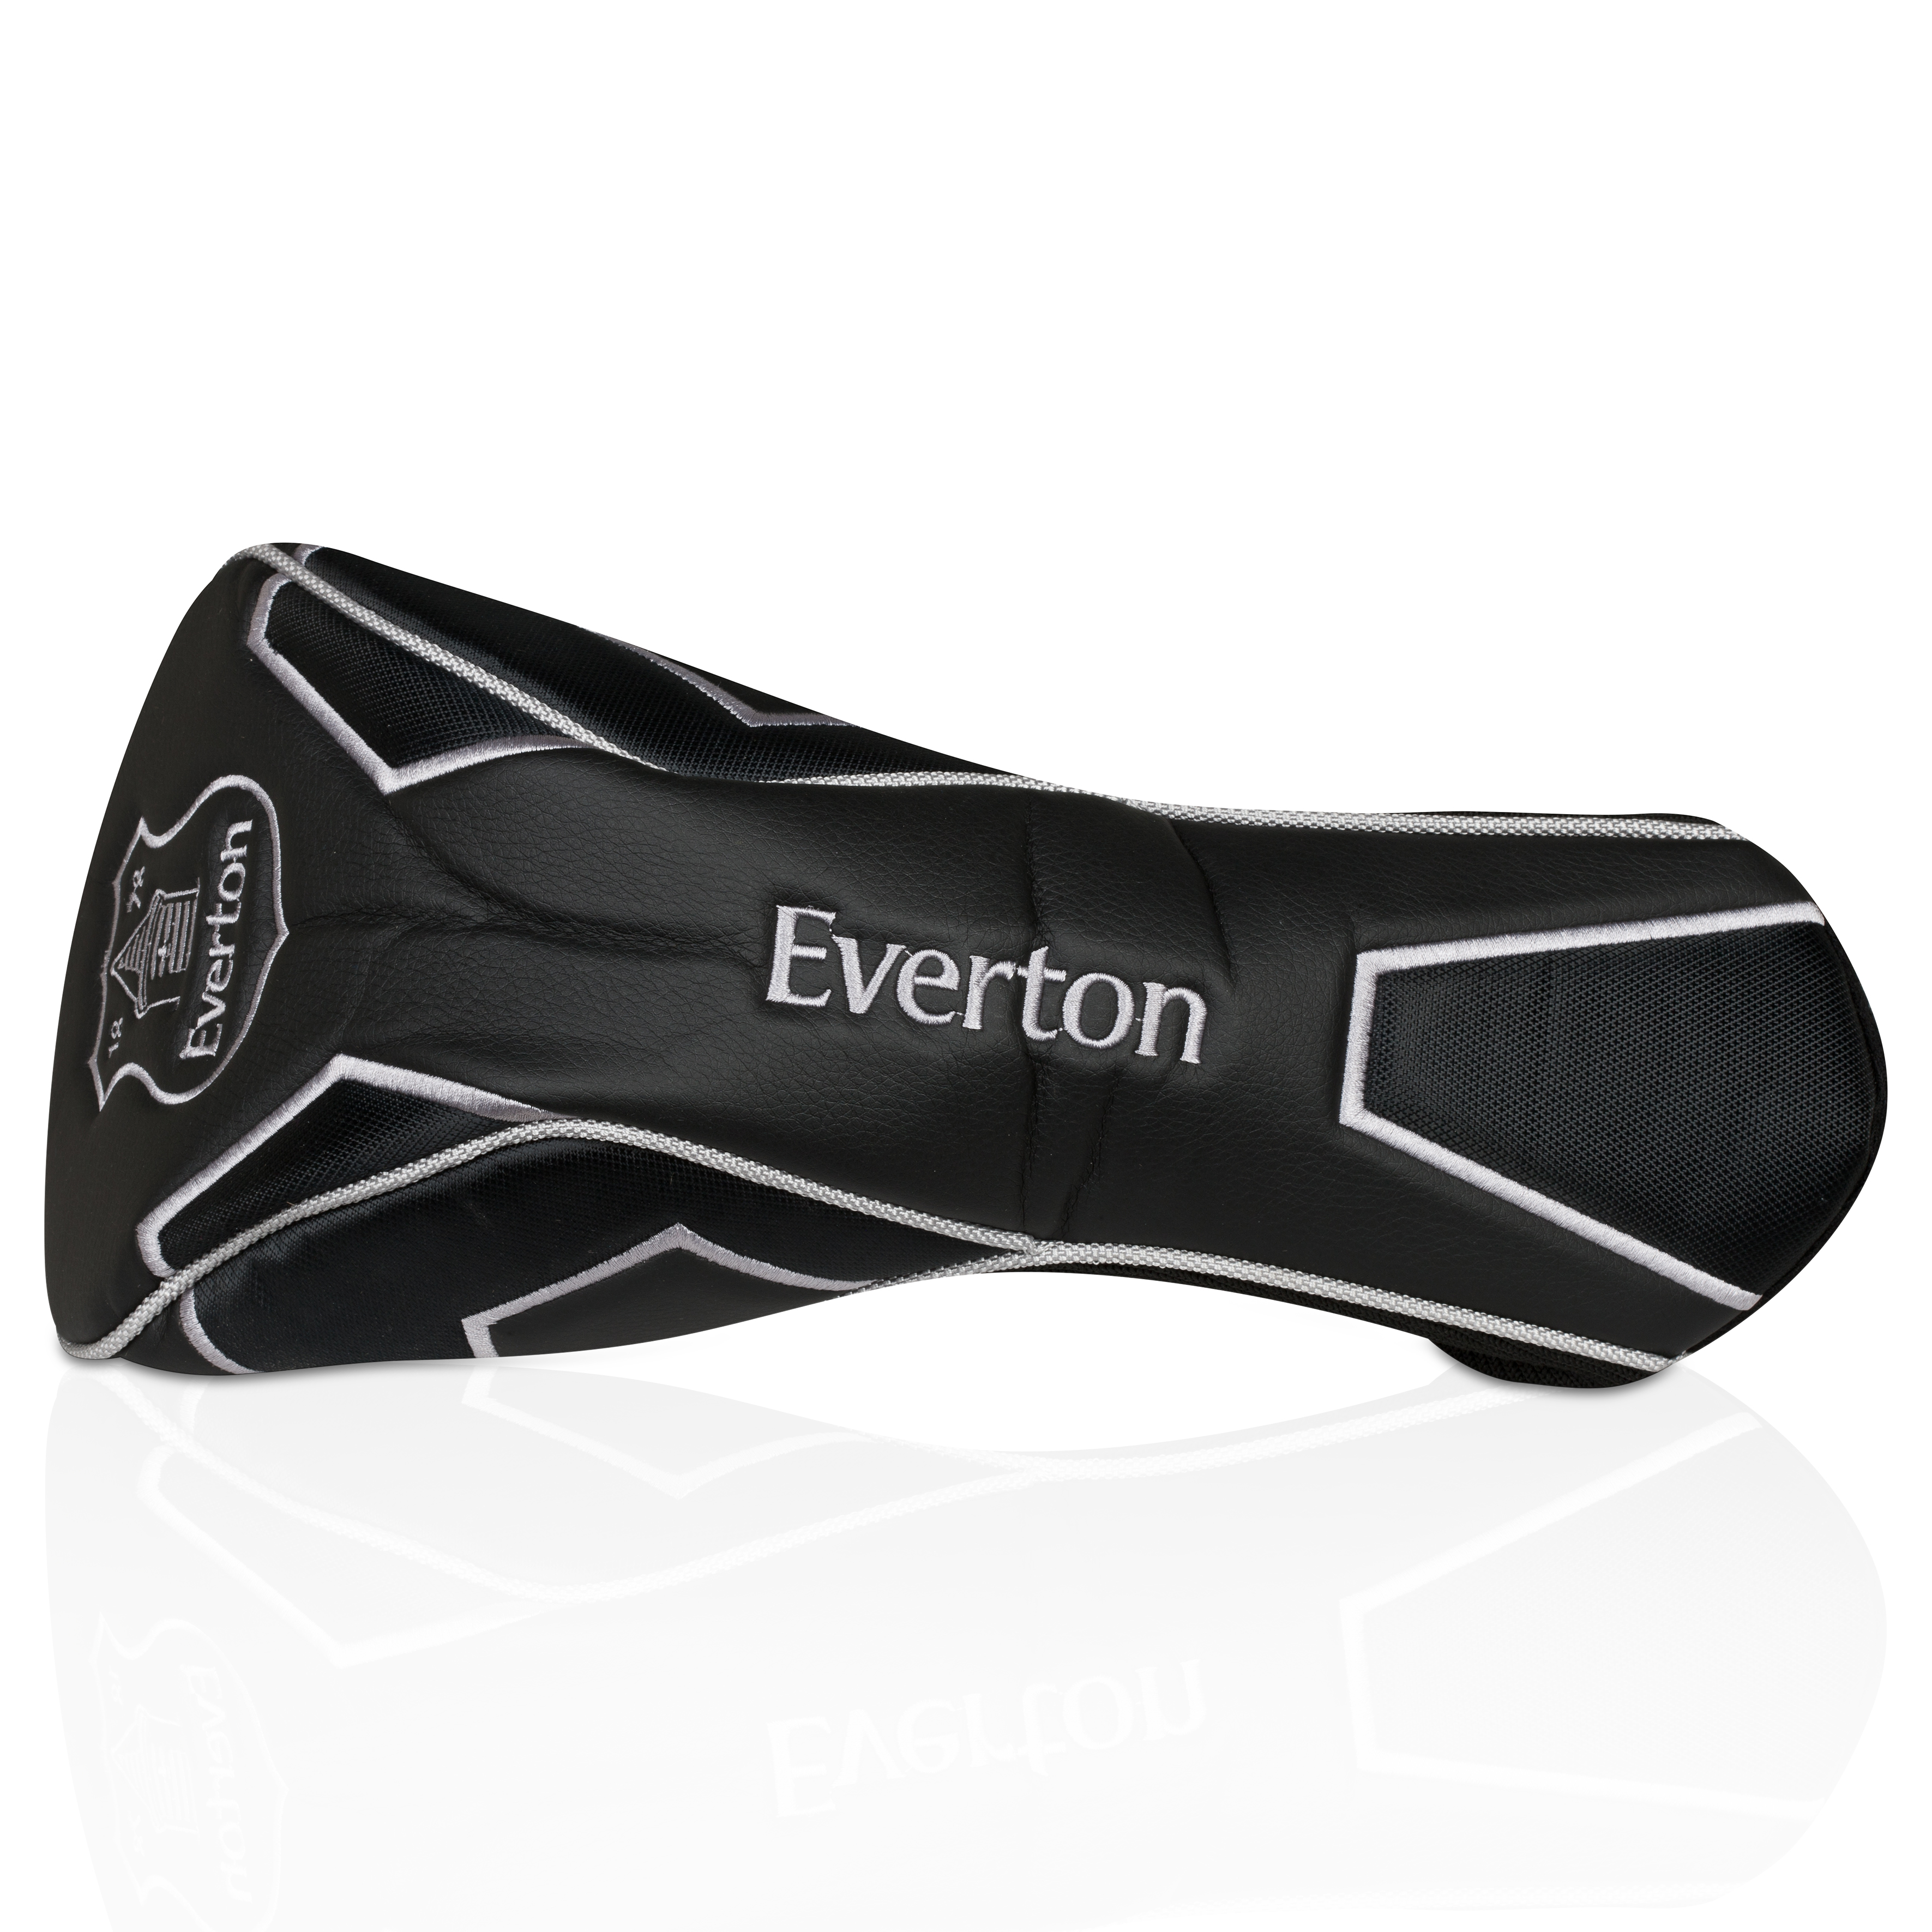 Everton Executive Golf Driver Head Cover - Black/Silver